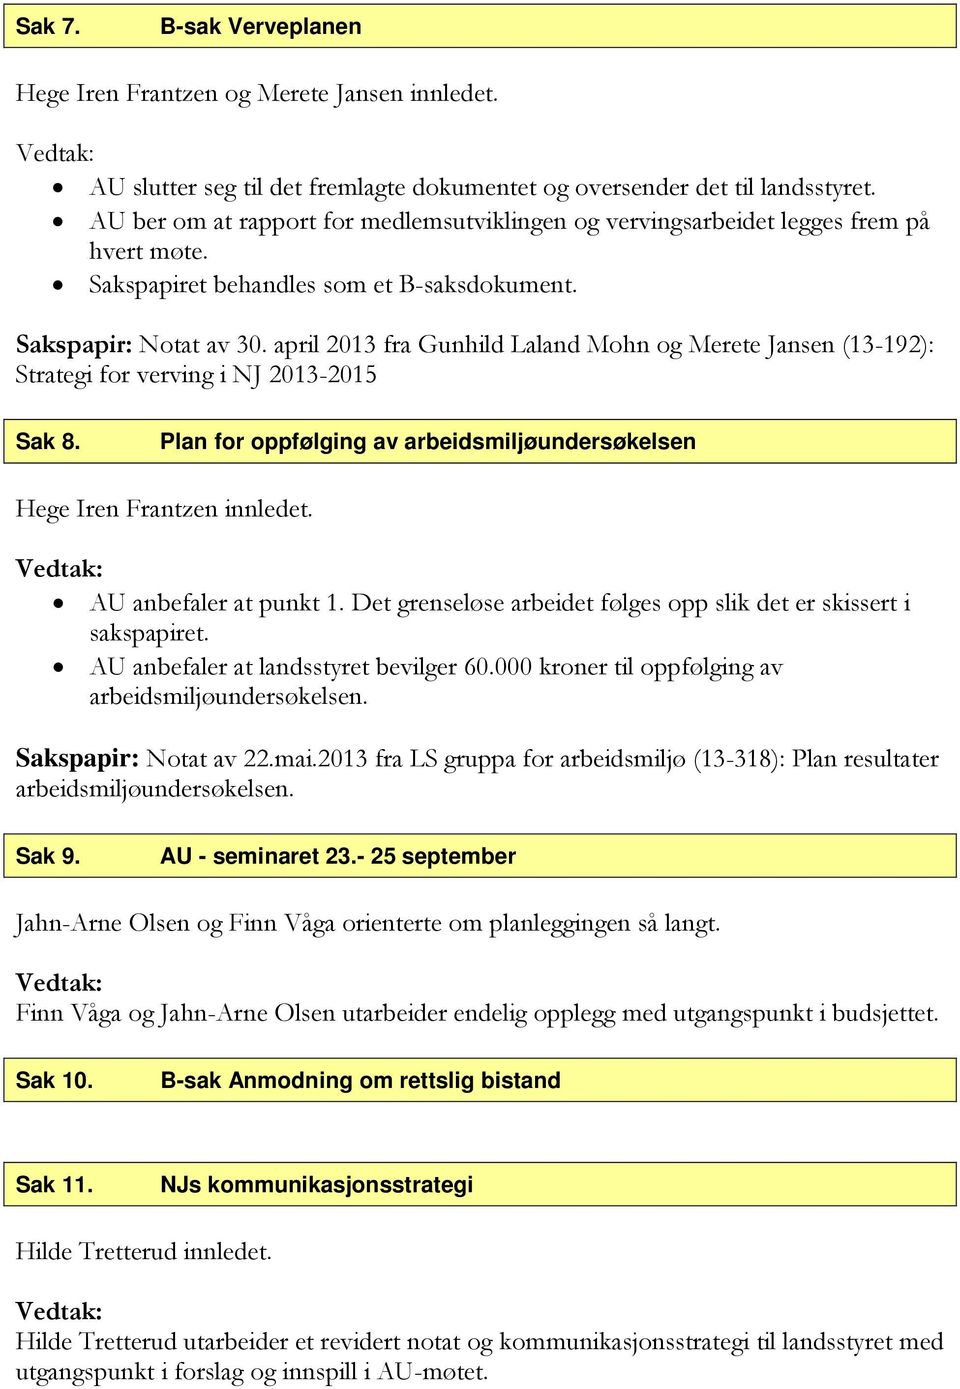 april 2013 fra Gunhild Laland Mohn og Merete Jansen (13-192): Strategi for verving i NJ 2013-2015 Sak 8. Plan for oppfølging av arbeidsmiljøundersøkelsen Hege Iren Frantzen innledet.